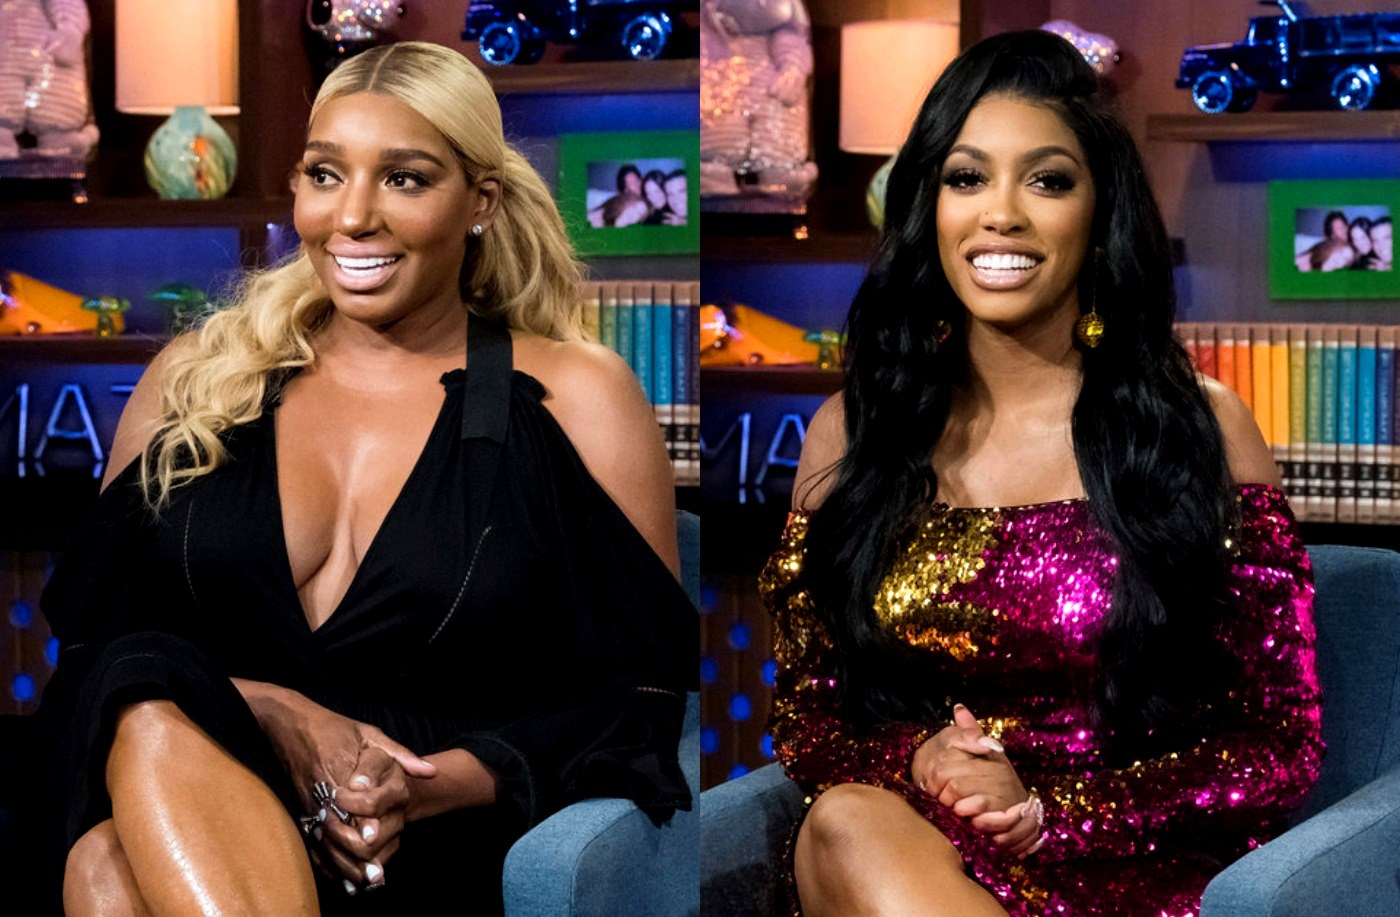 NeNe Leakes Calls Porsha Williams 'Sister' And Fans Are In Awe